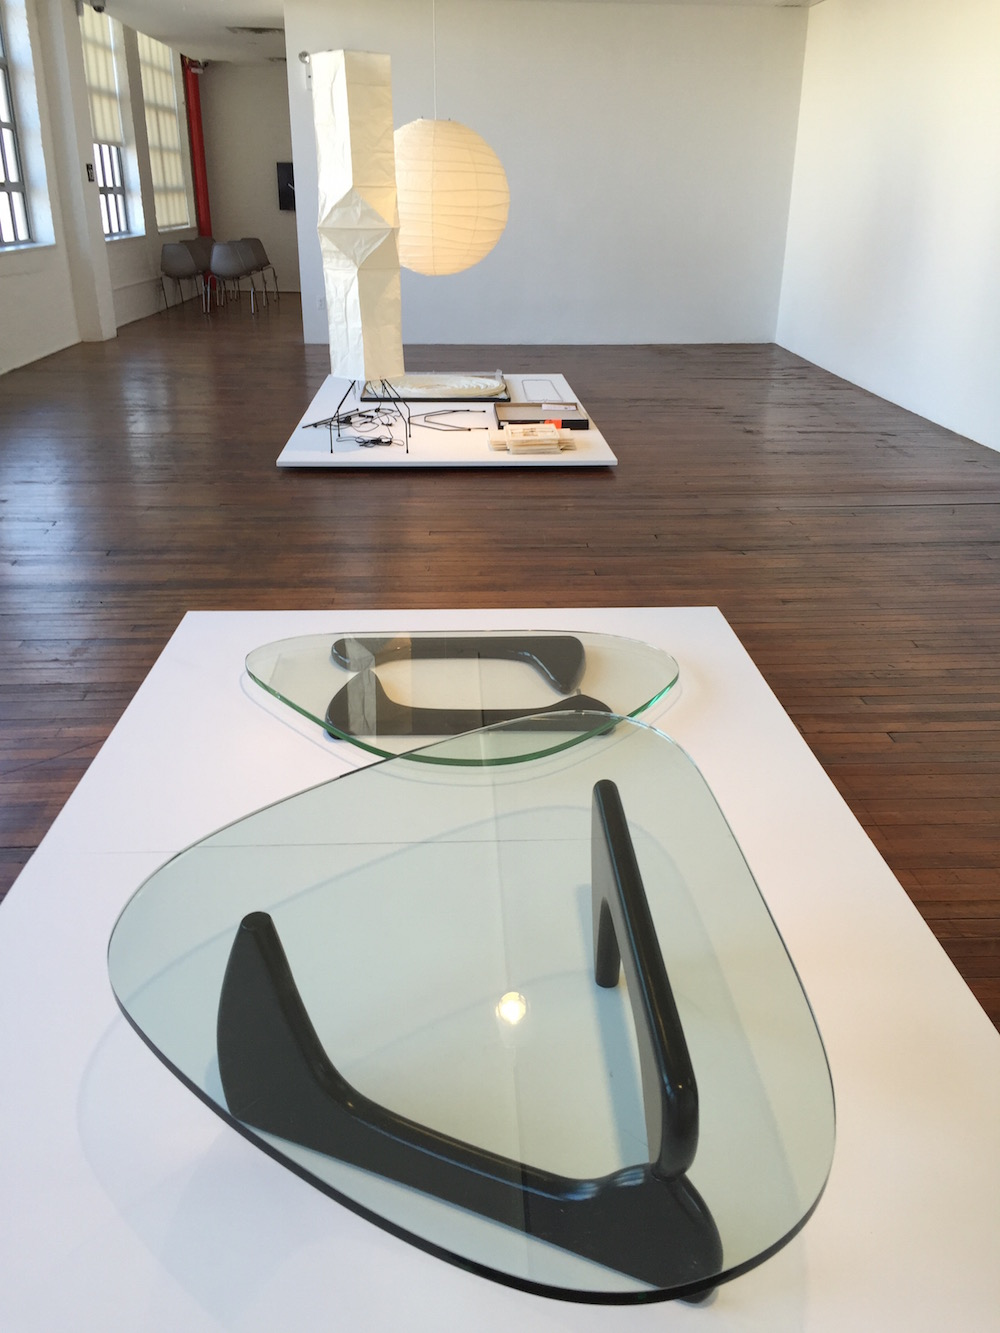 Travel in your backyard noguchi museum in queens ny rose spaziani coffee tables and lighting fixtures at noguchi museum photo credit rose spaziani arubaitofo Choice Image